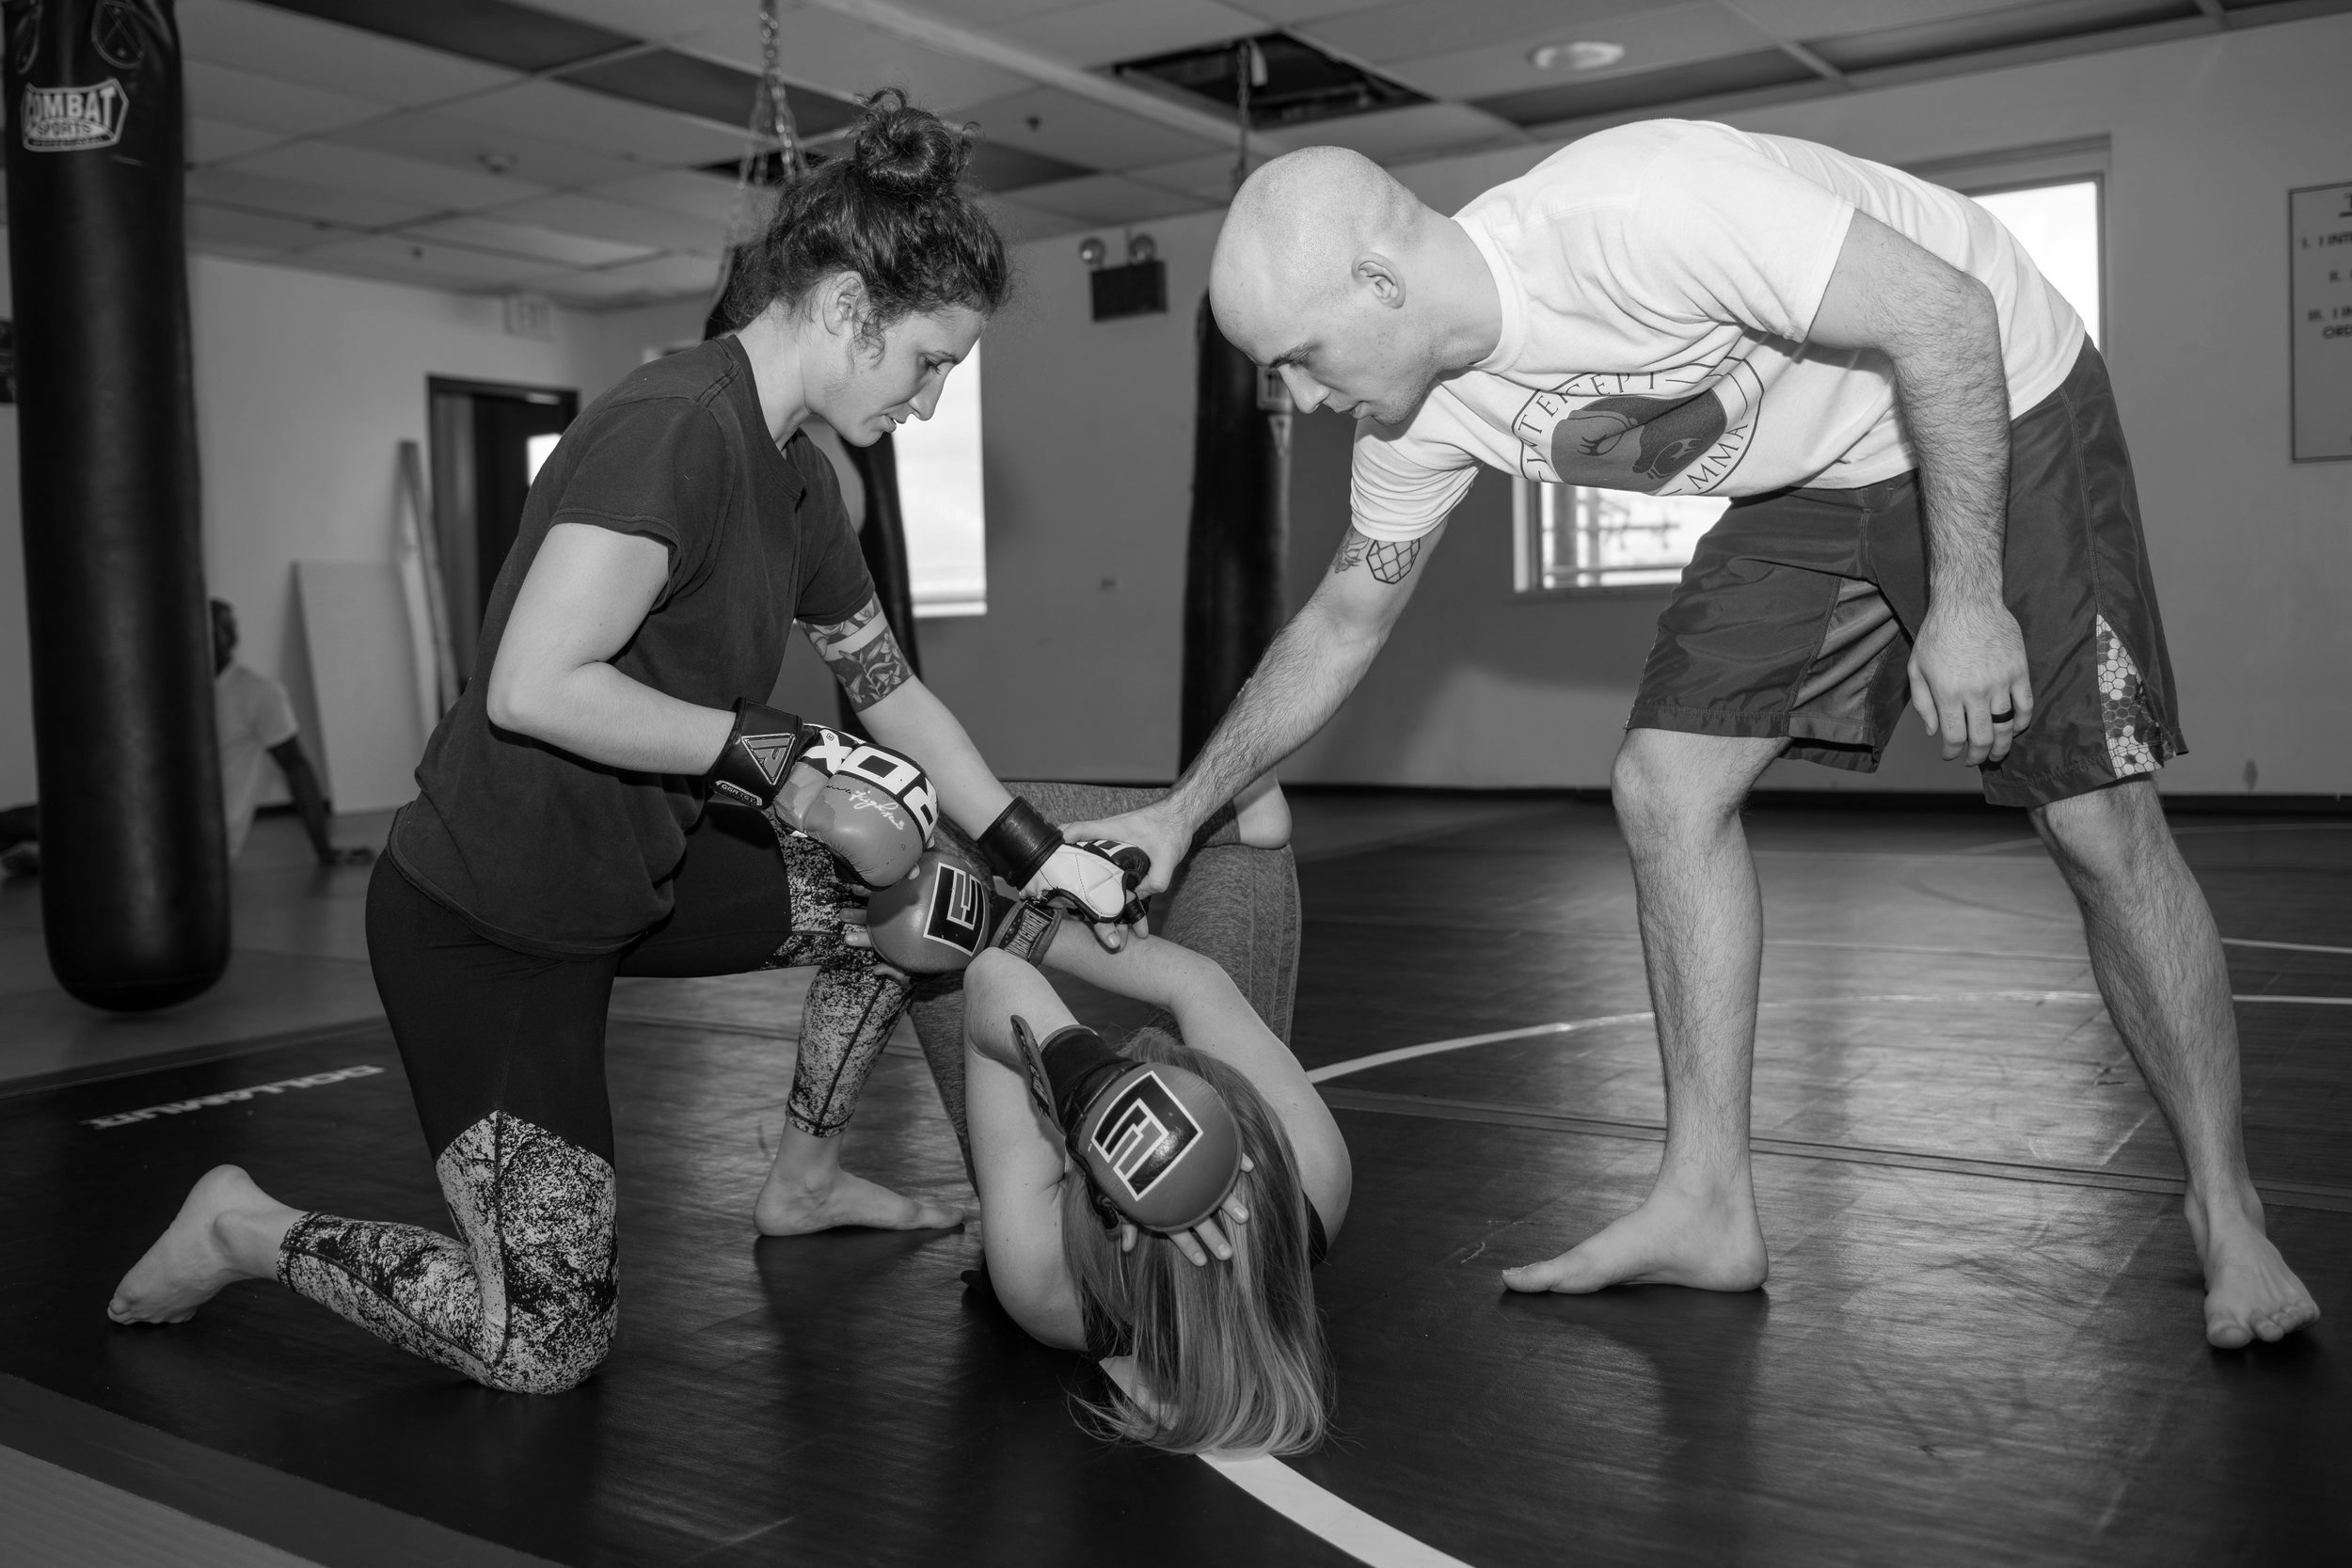 ready to get started? - Ready to take the next step toward your fitness or martial arts goal? sign up with intercept mma!